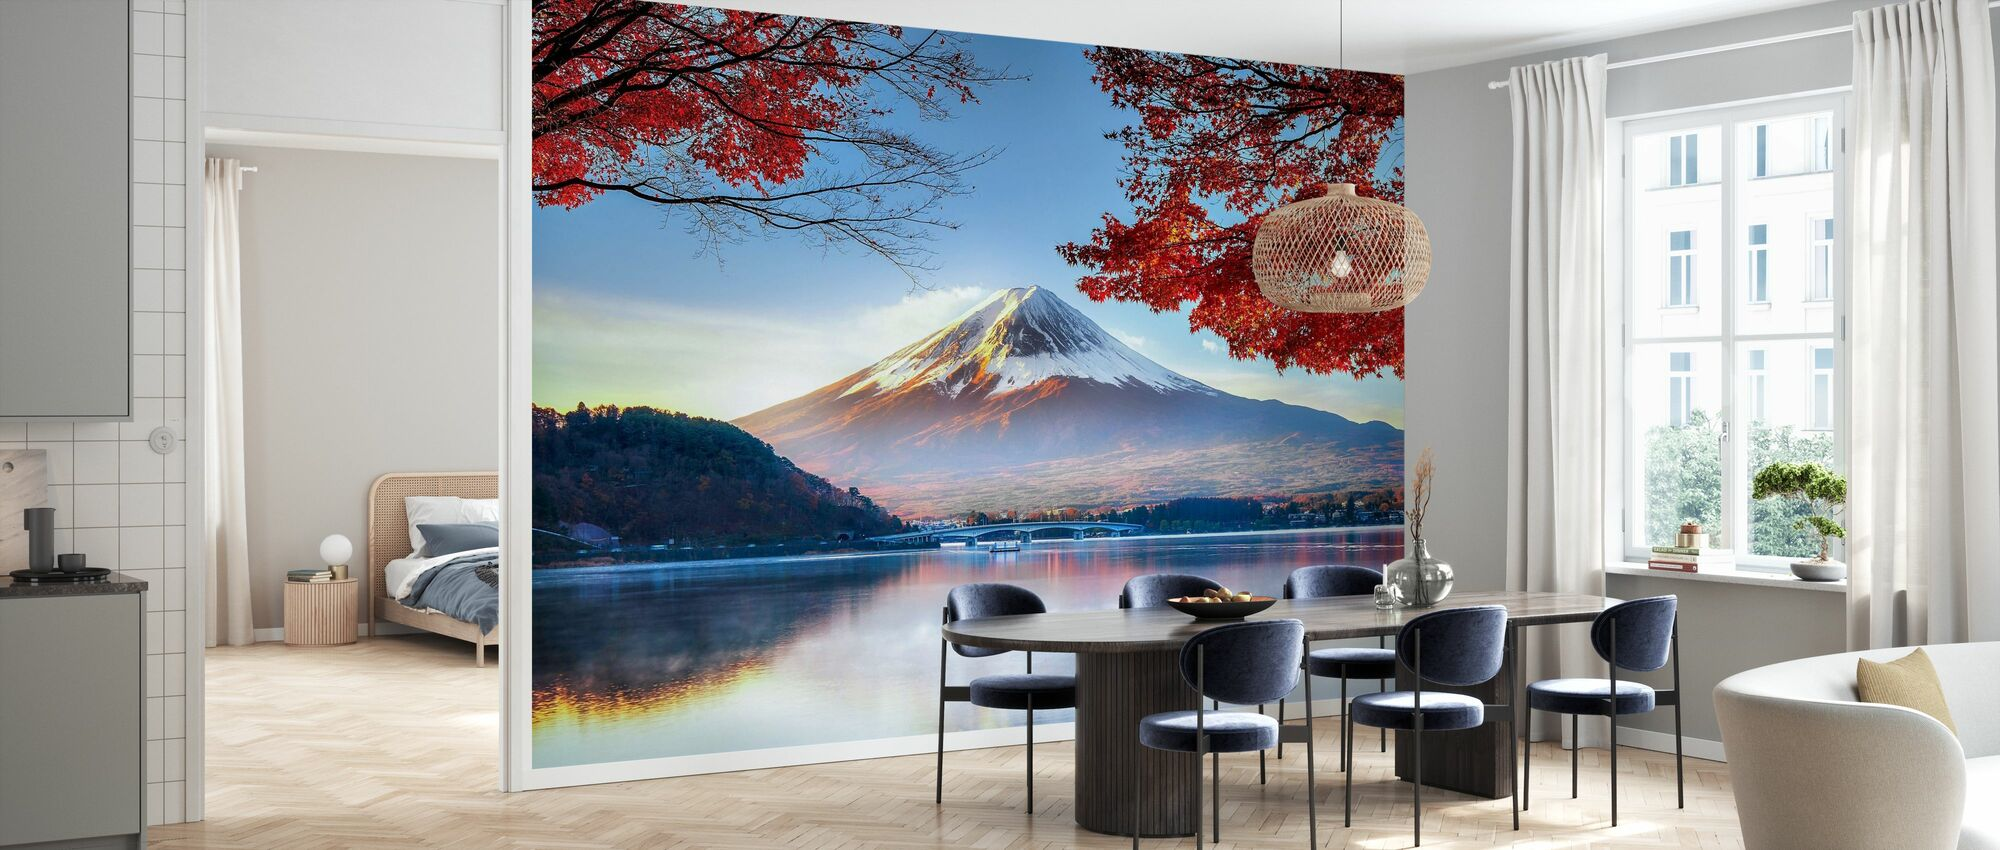 Fuji Mountain in Autumn - Wallpaper - Kitchen